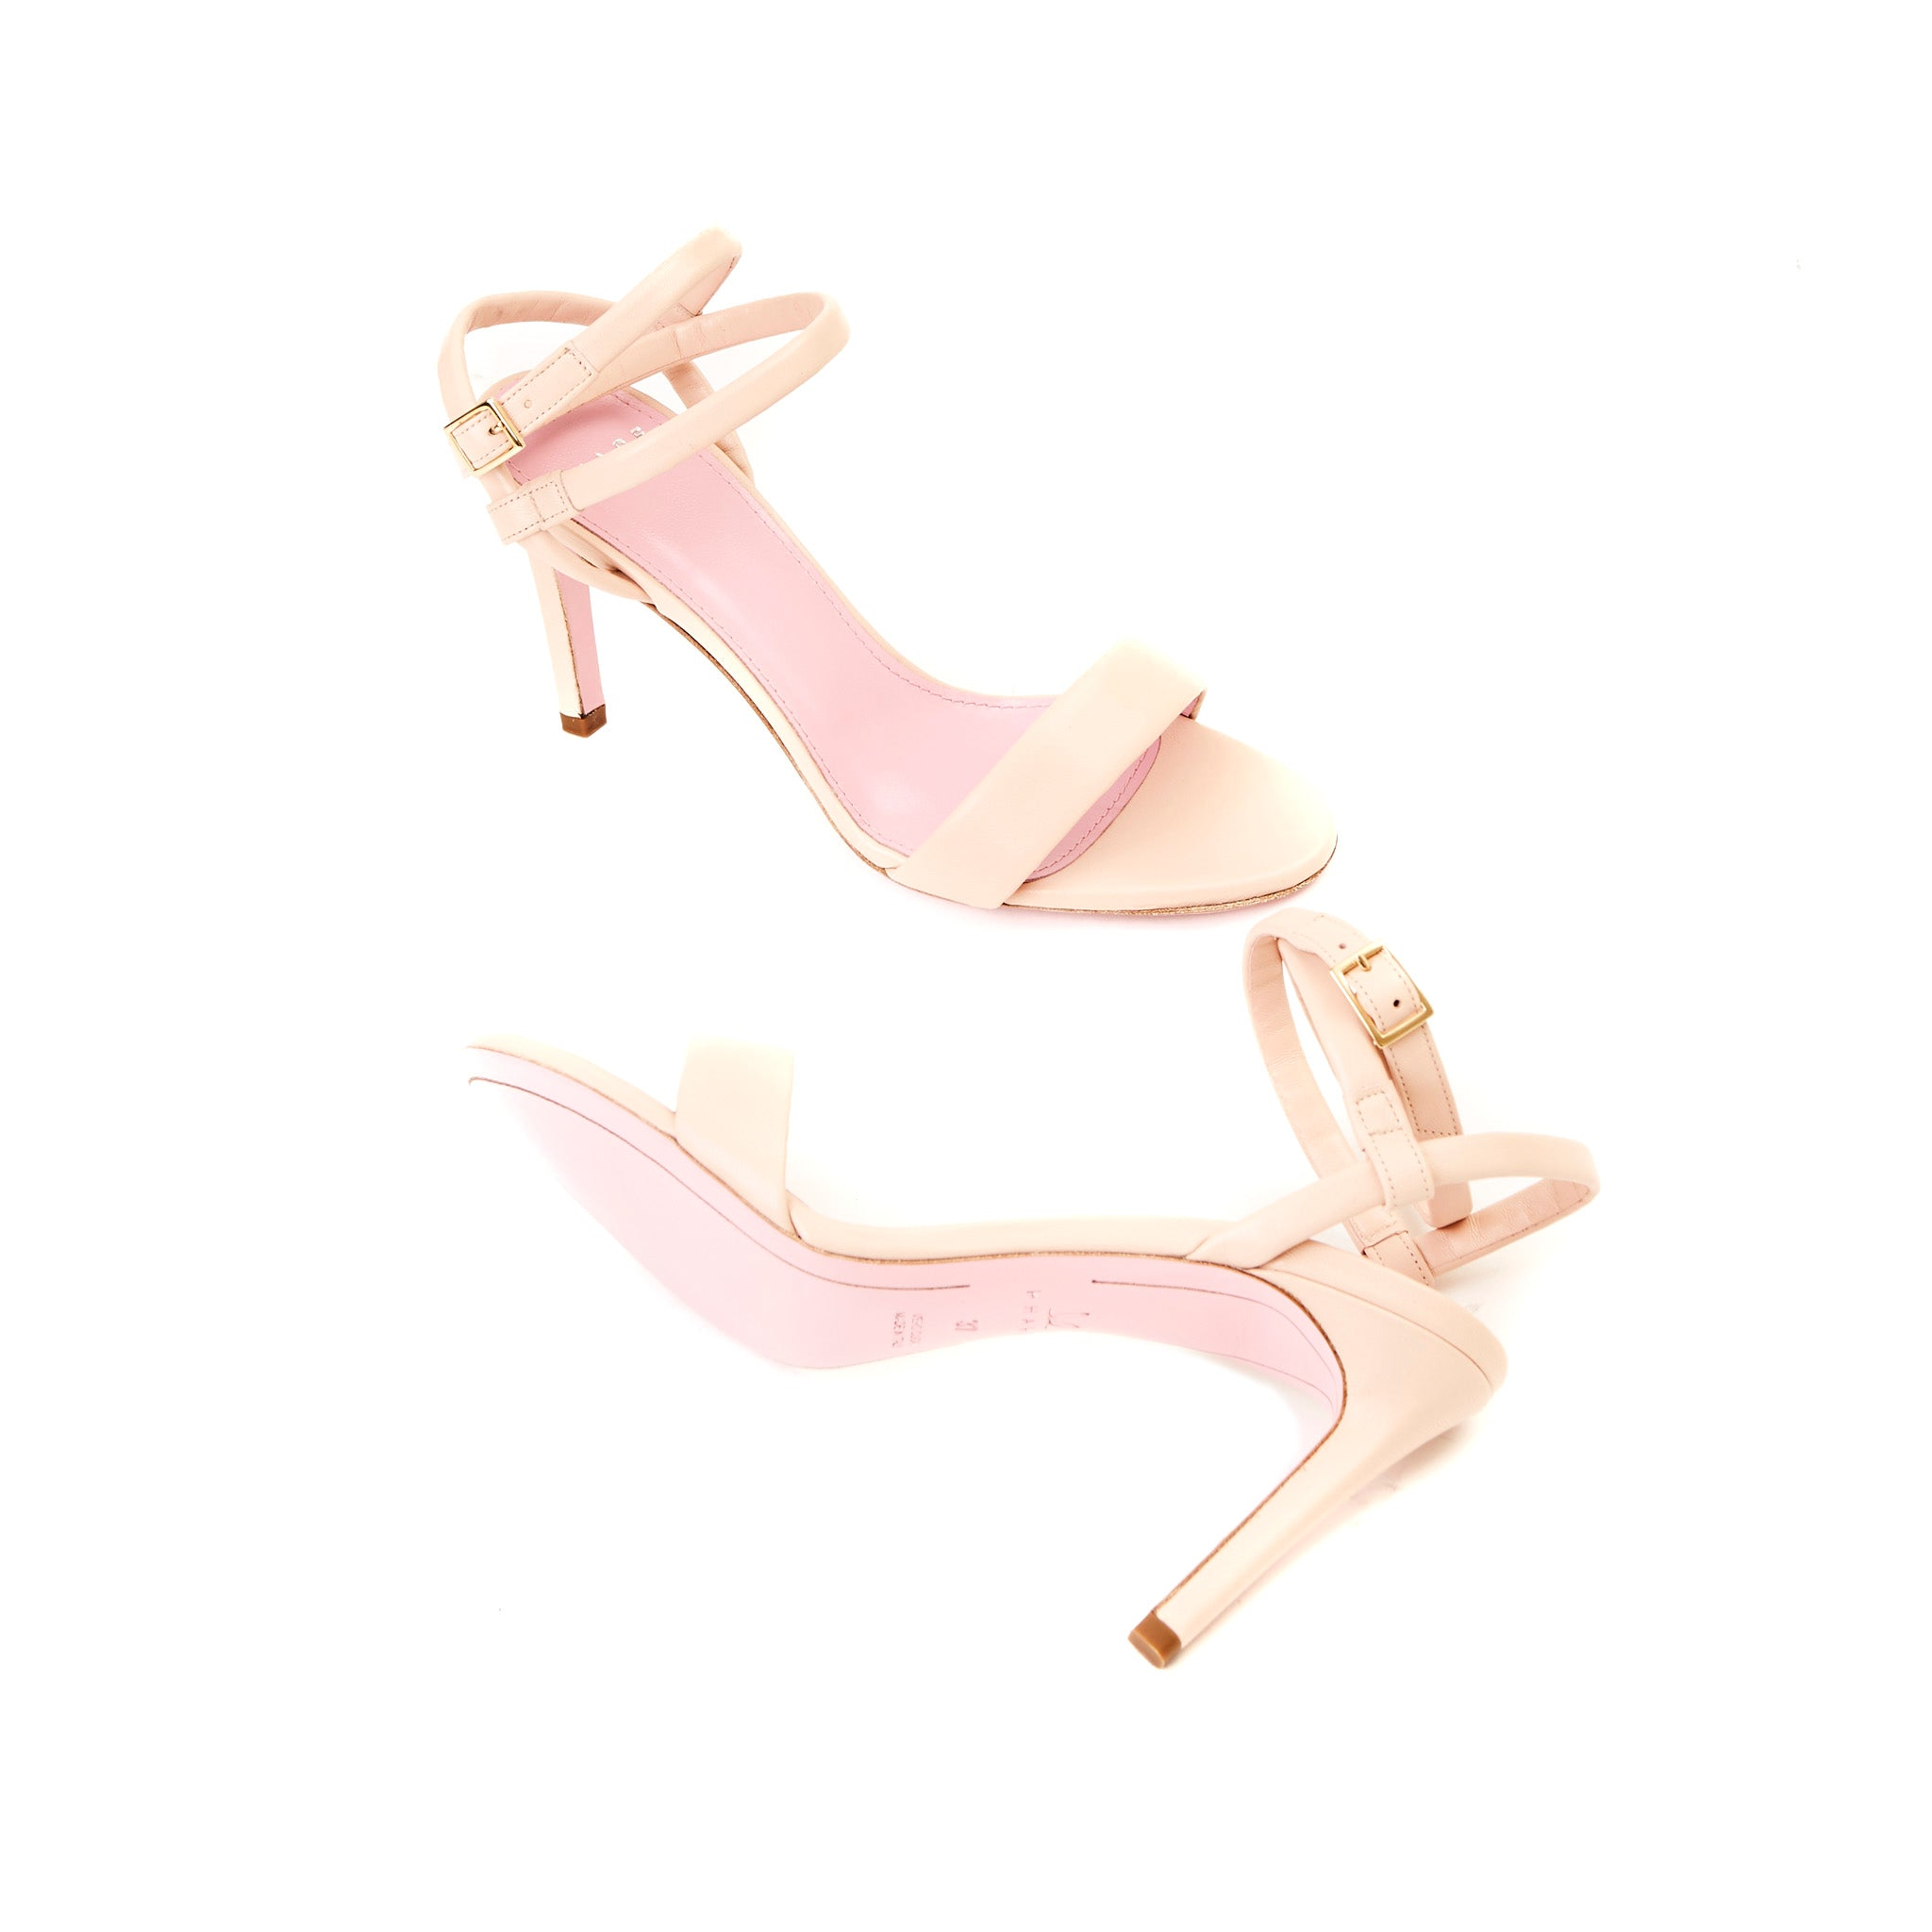 Phare Wrap ankle strap high heel sandal in pelle leather sole view